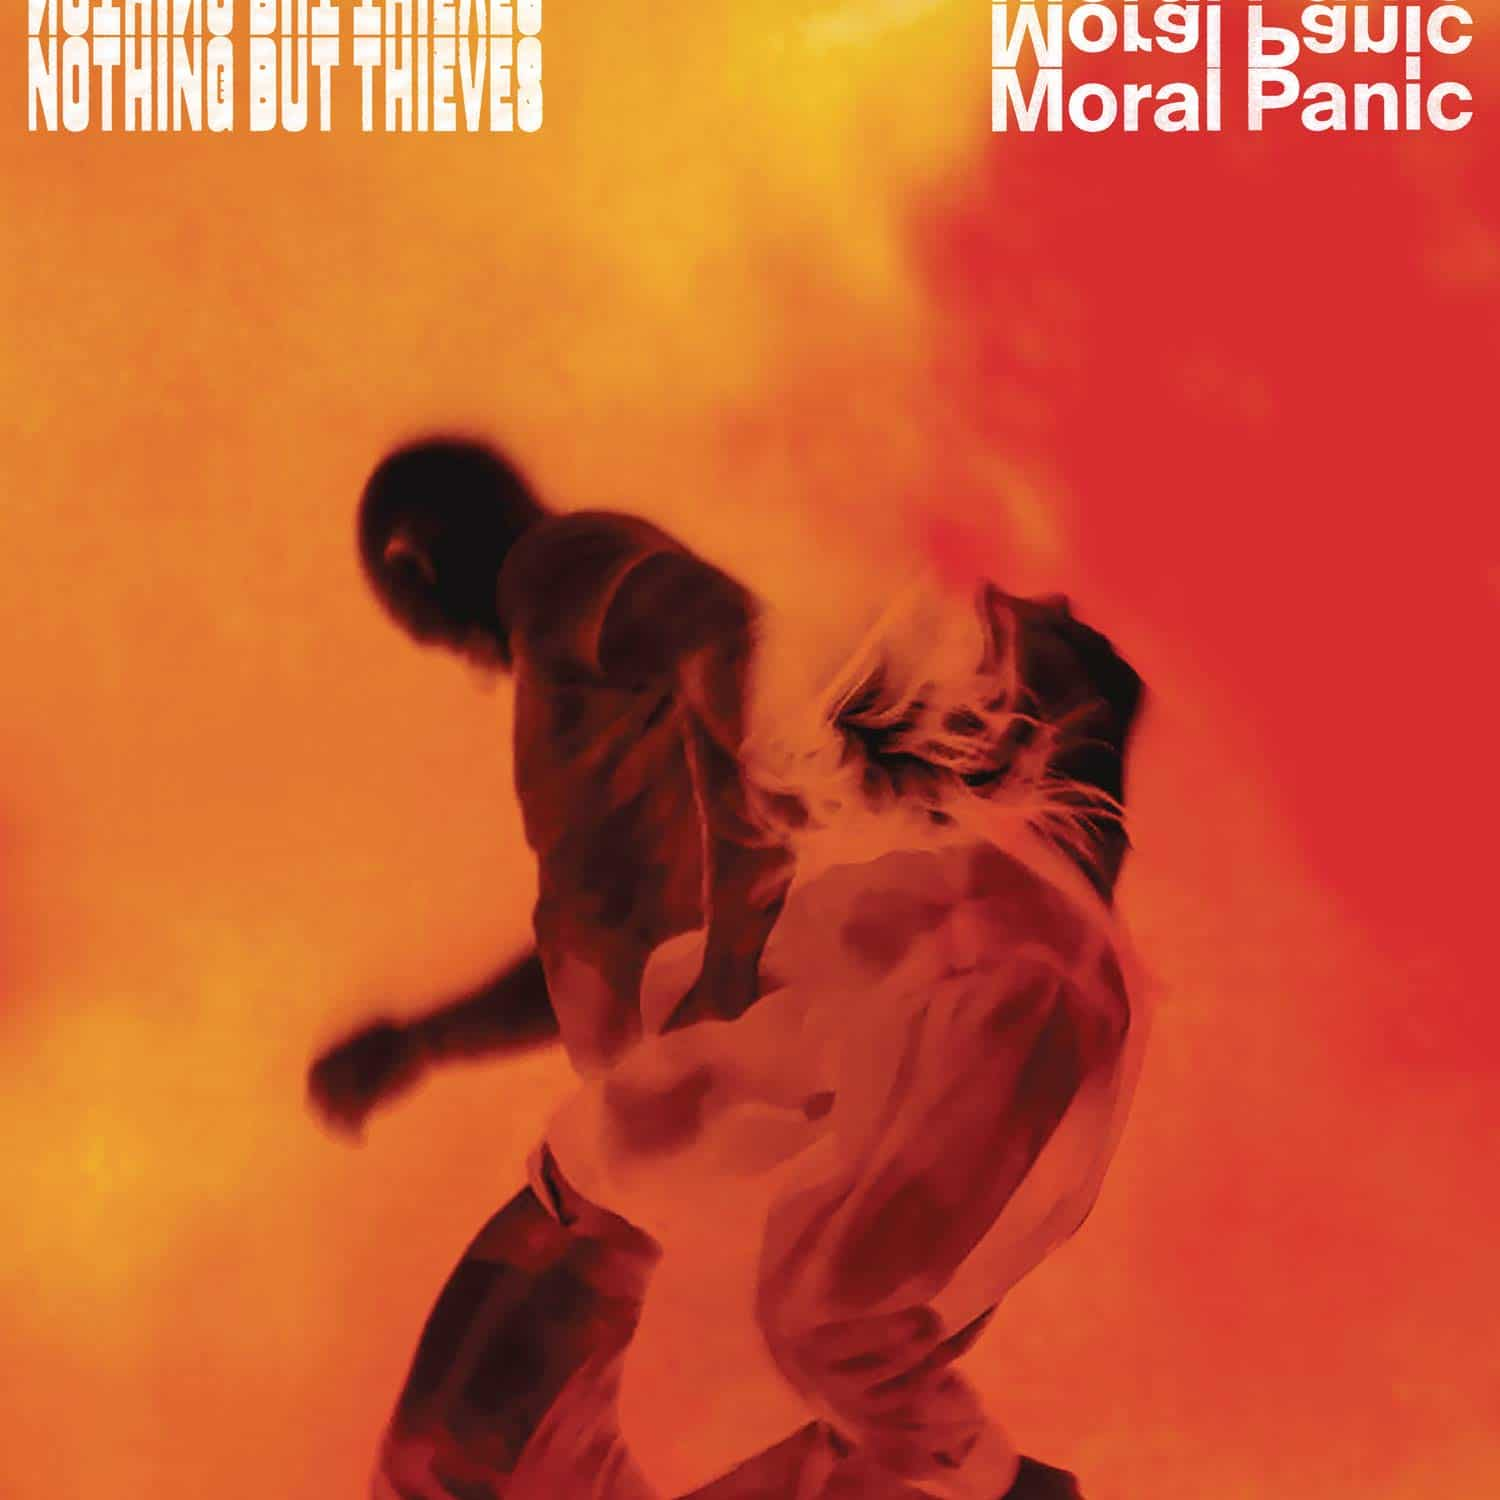 Nothing But Thieves Moral Panic artwork